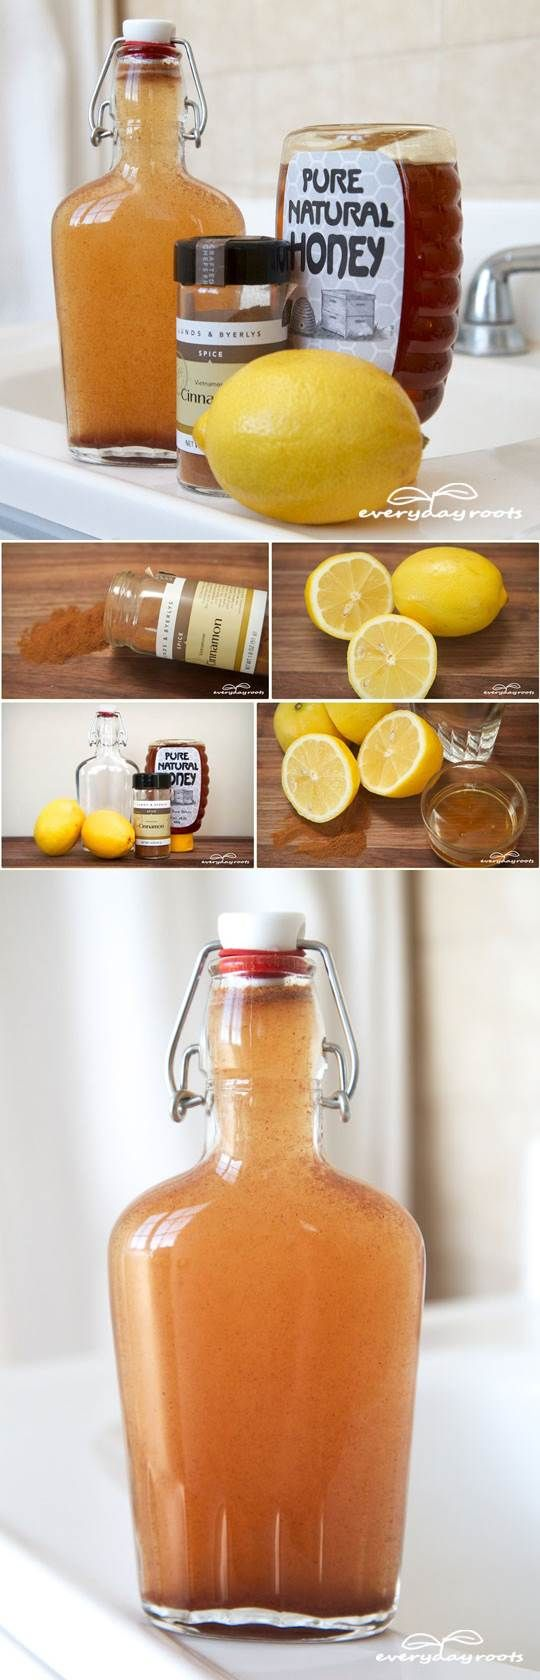 How to get rid of bad breath -2 lemons -1/2 tablespoon of cinnamon -1/2 teaspoon-1 teaspoon baking soda -1 ½ teaspoons of honey -1 cup of warm water -A bottle or jar with a tight fitting lid